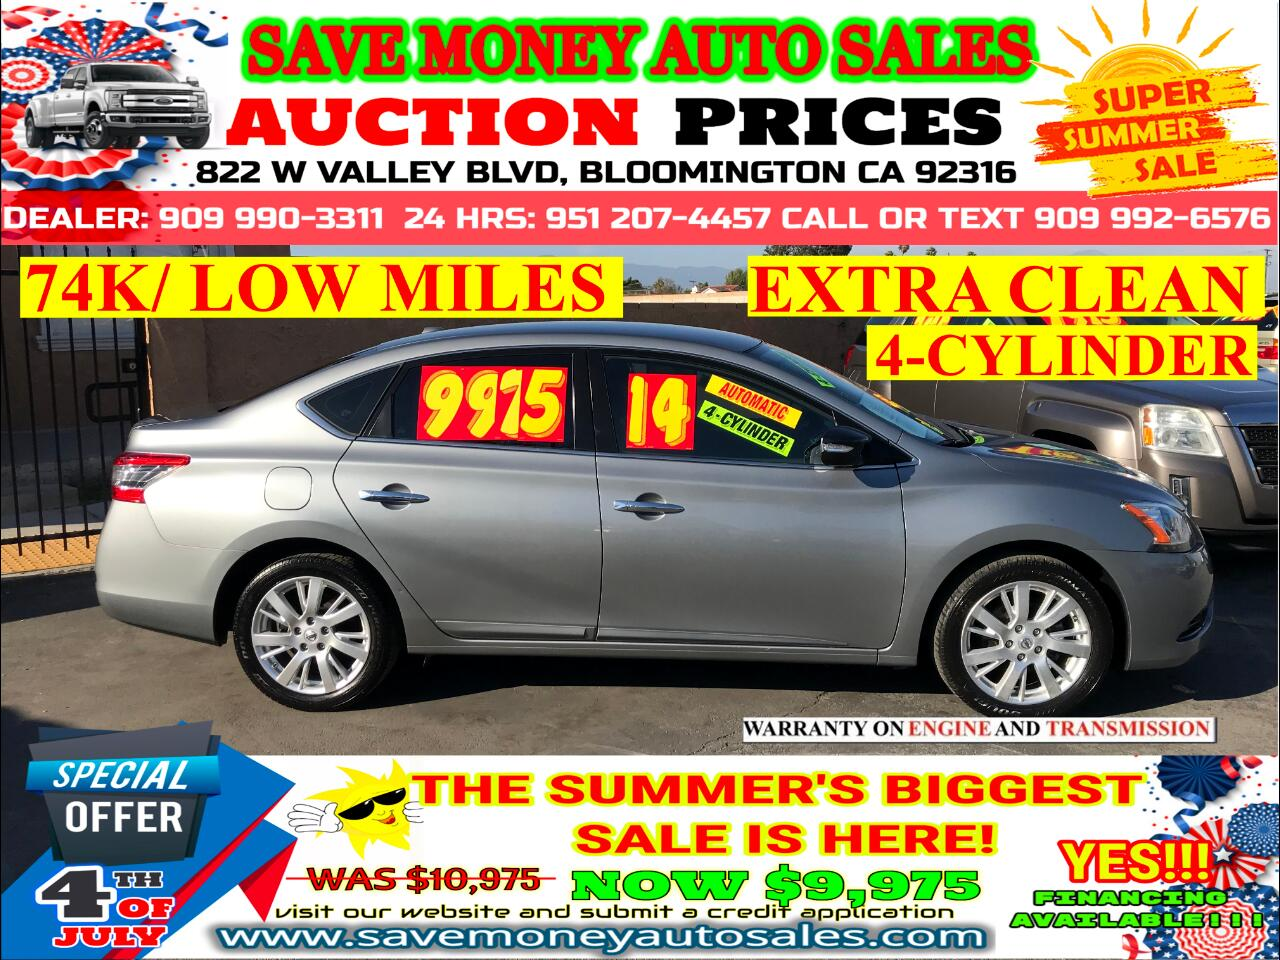 2014 Nissan Sentra SL> 74K LOW MILES> EXTRA CLEAN> 4-CYLDS